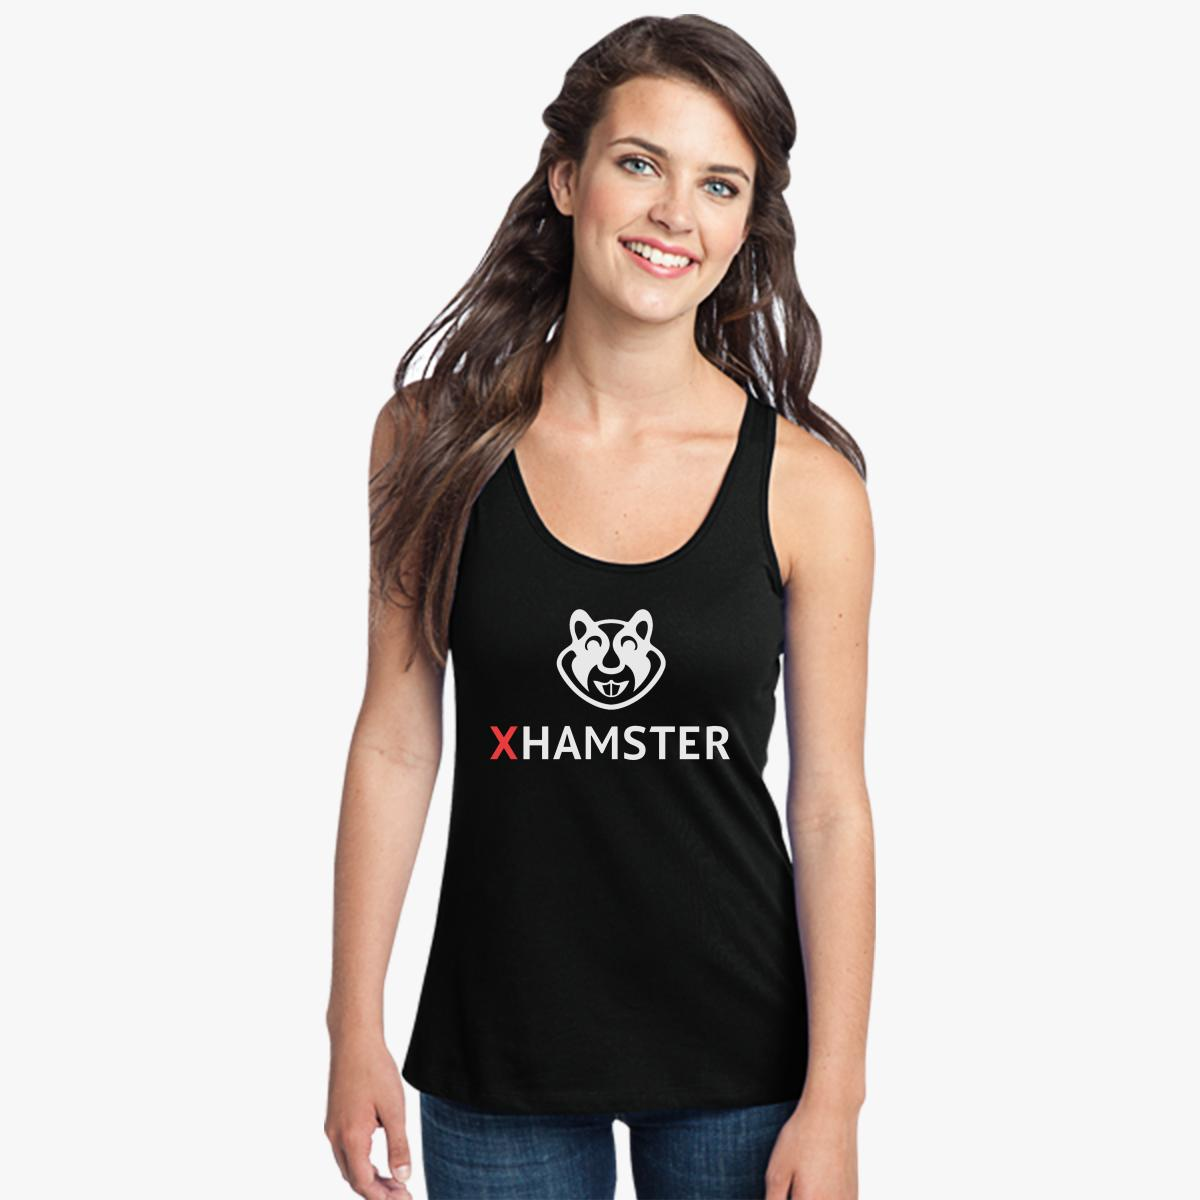 xhamster women's racerback tank top | customon